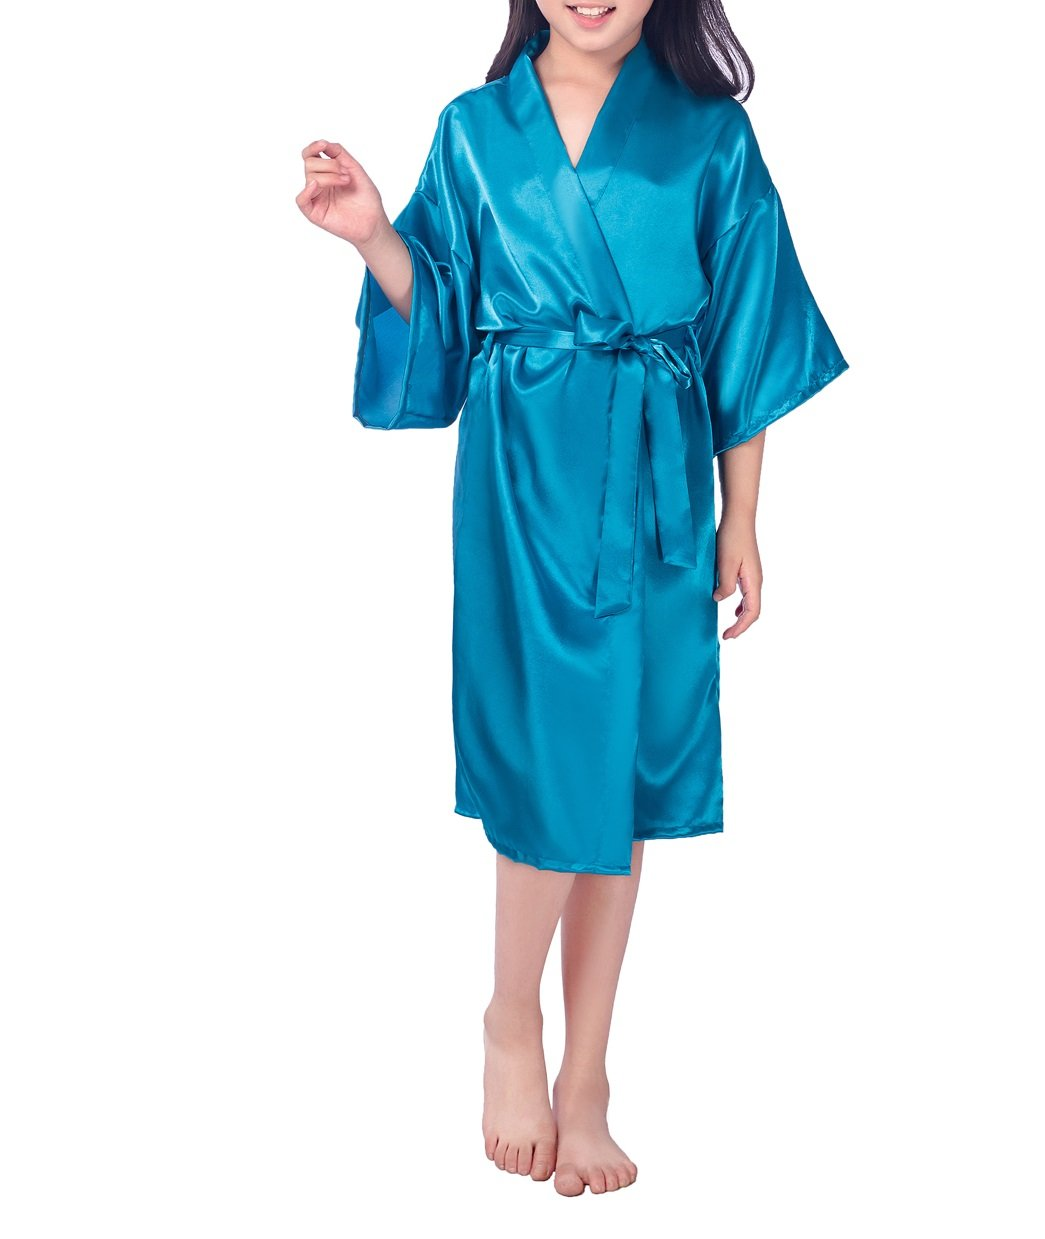 SexyTown Girls' Kimono Robe Satin Bridal Nightgown For Wedding Party Birthday 10 Peacock Blue